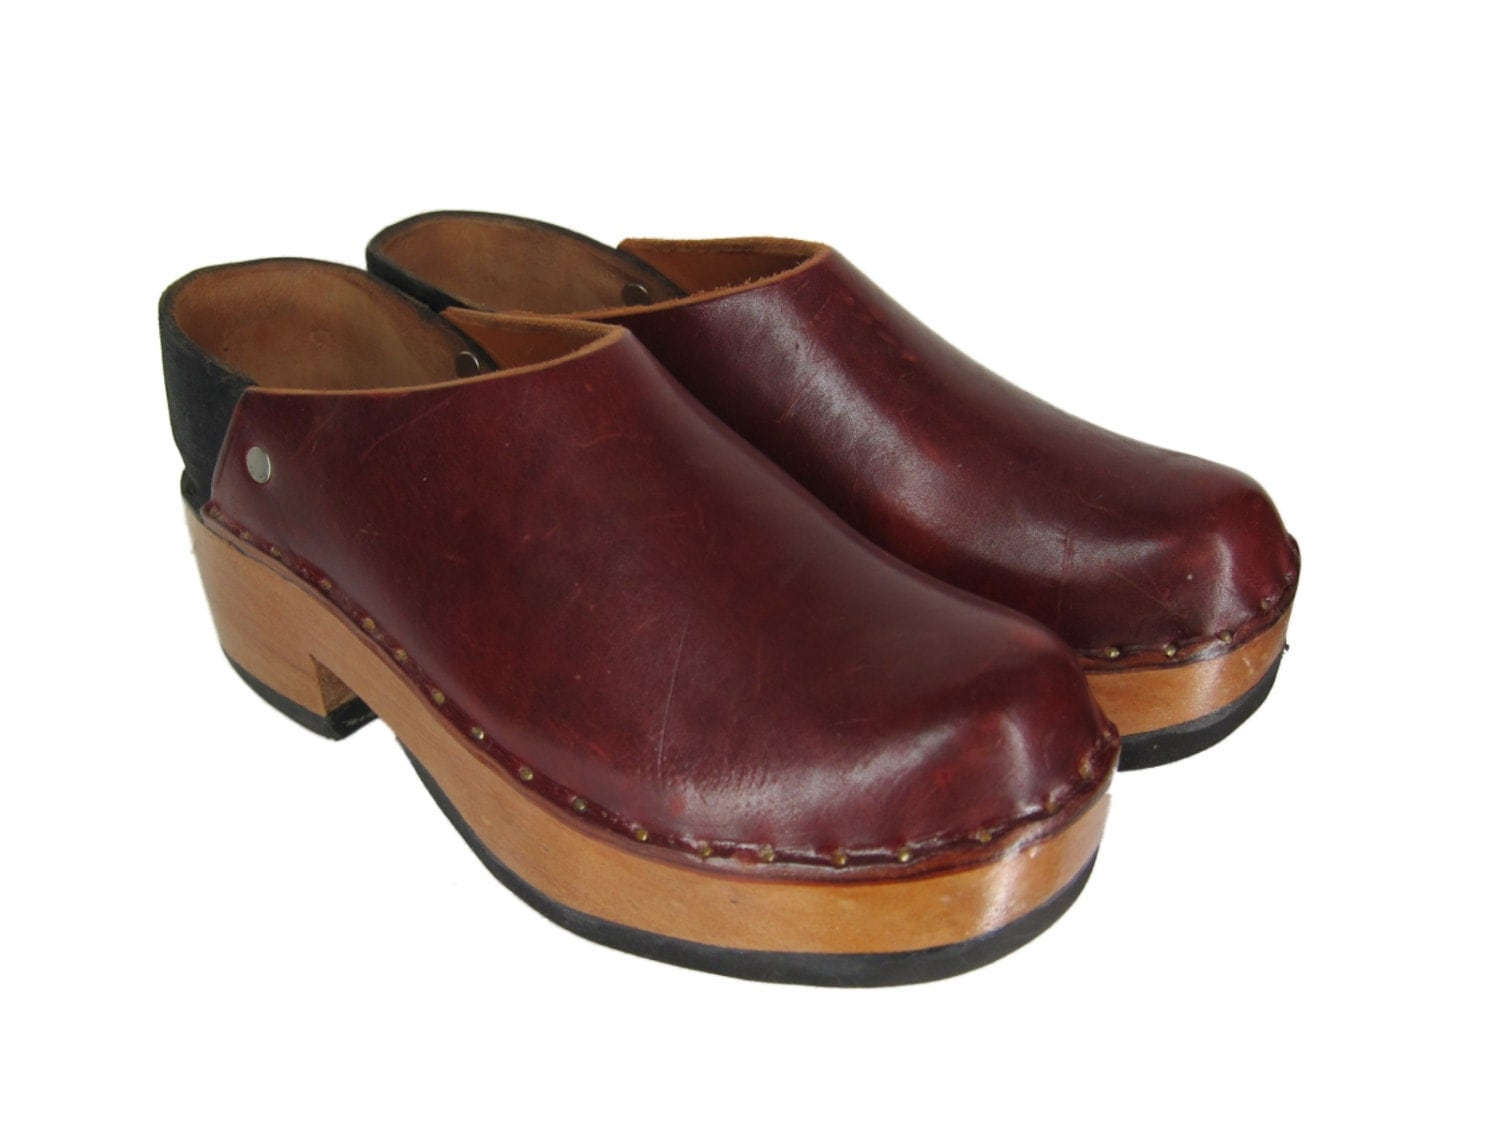 Vintage 70s Clogs Wooden Leather Shoes Oxblood By RoseCtyRetro